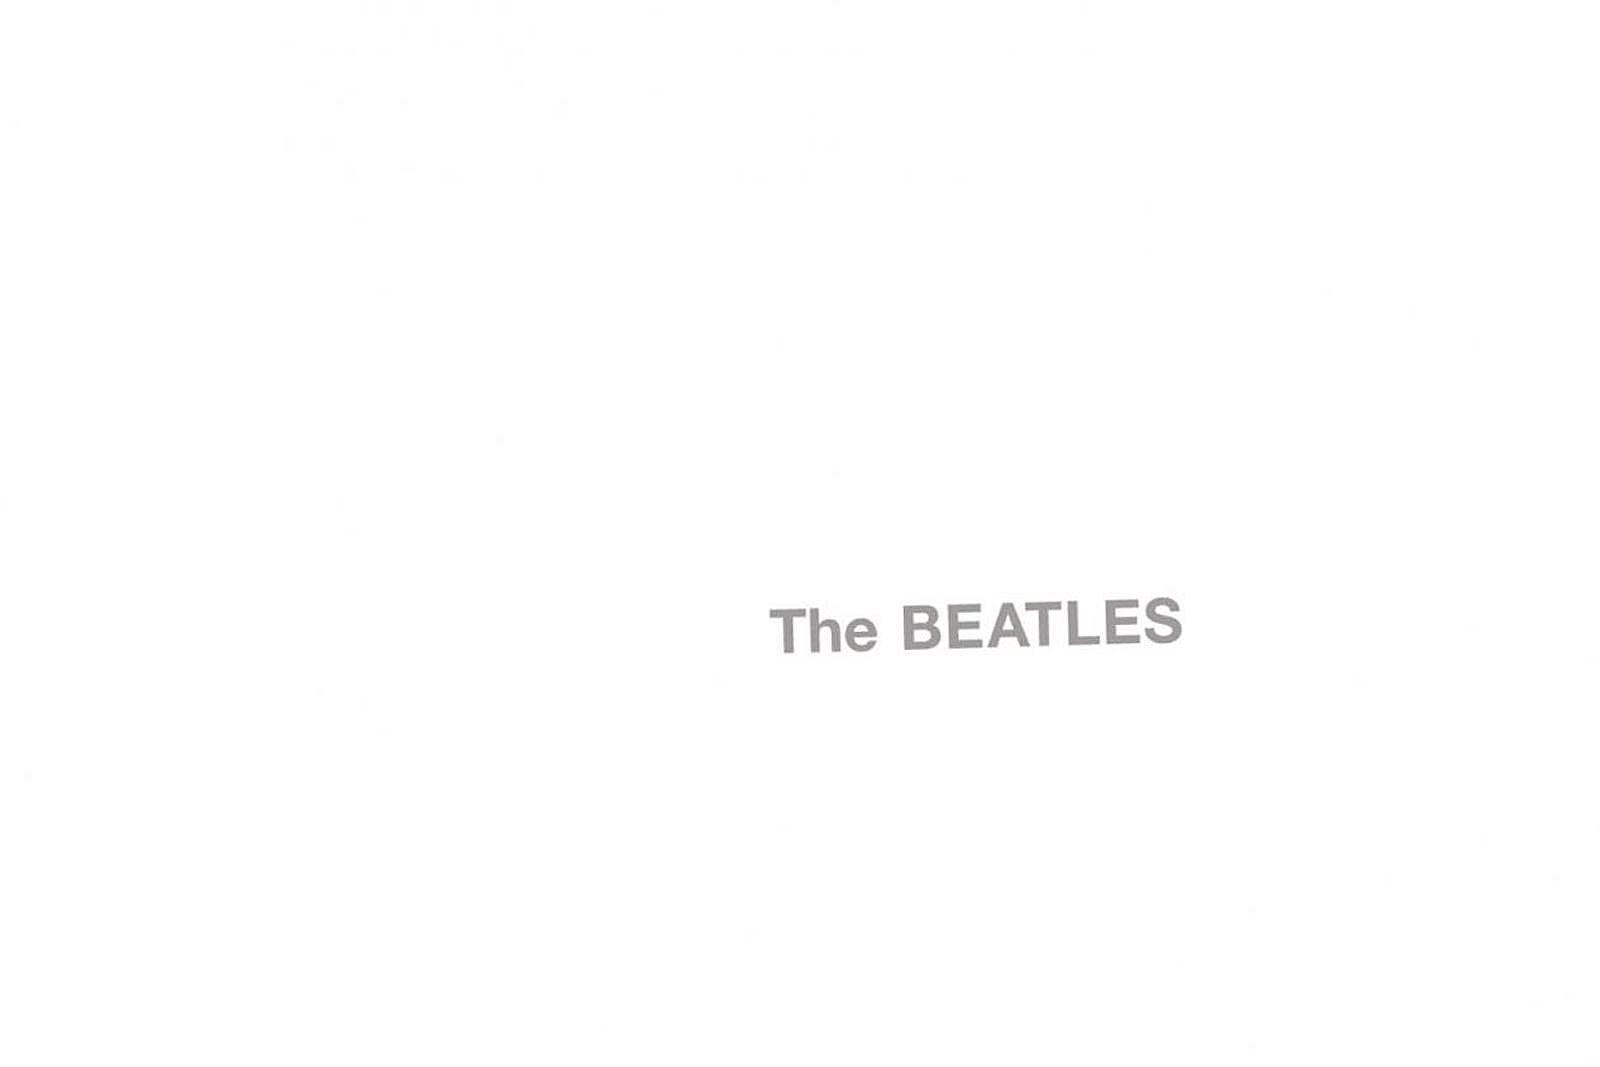 All 227 Beatles Songs Ranked Worst To Best